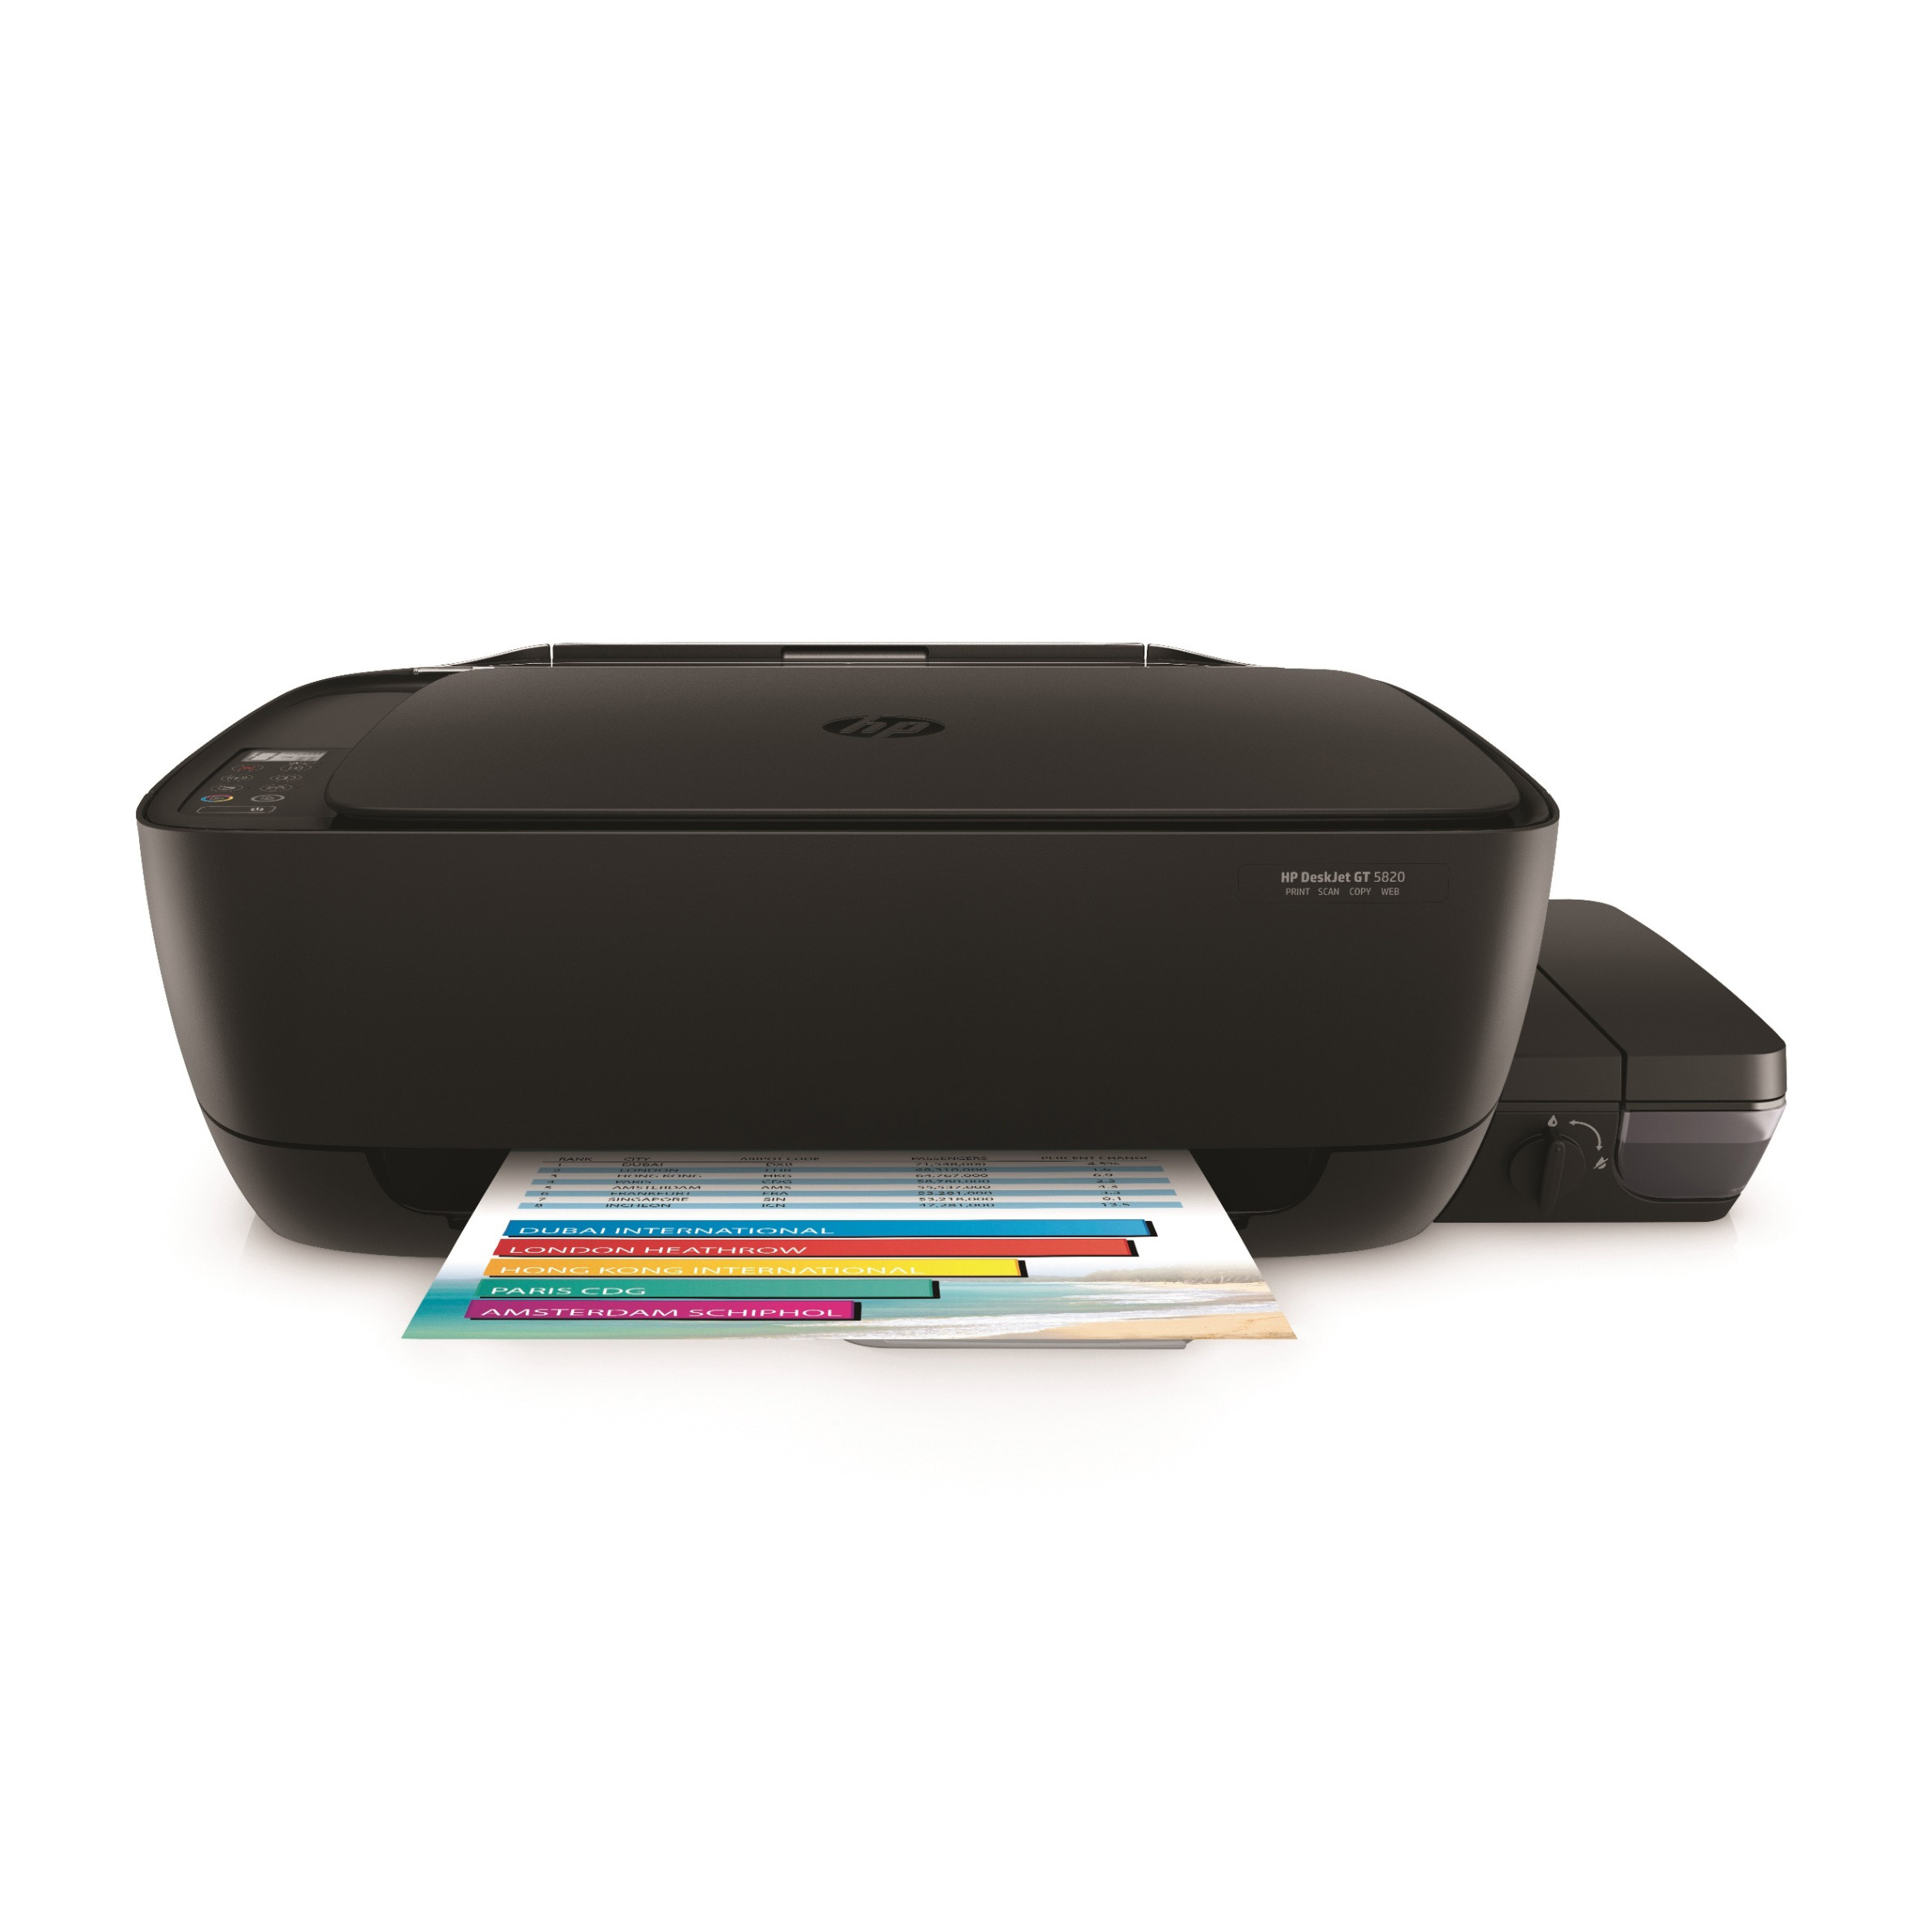 HP DeskJet GT 5820 All-in-One Printer WL, Center, Front, with output